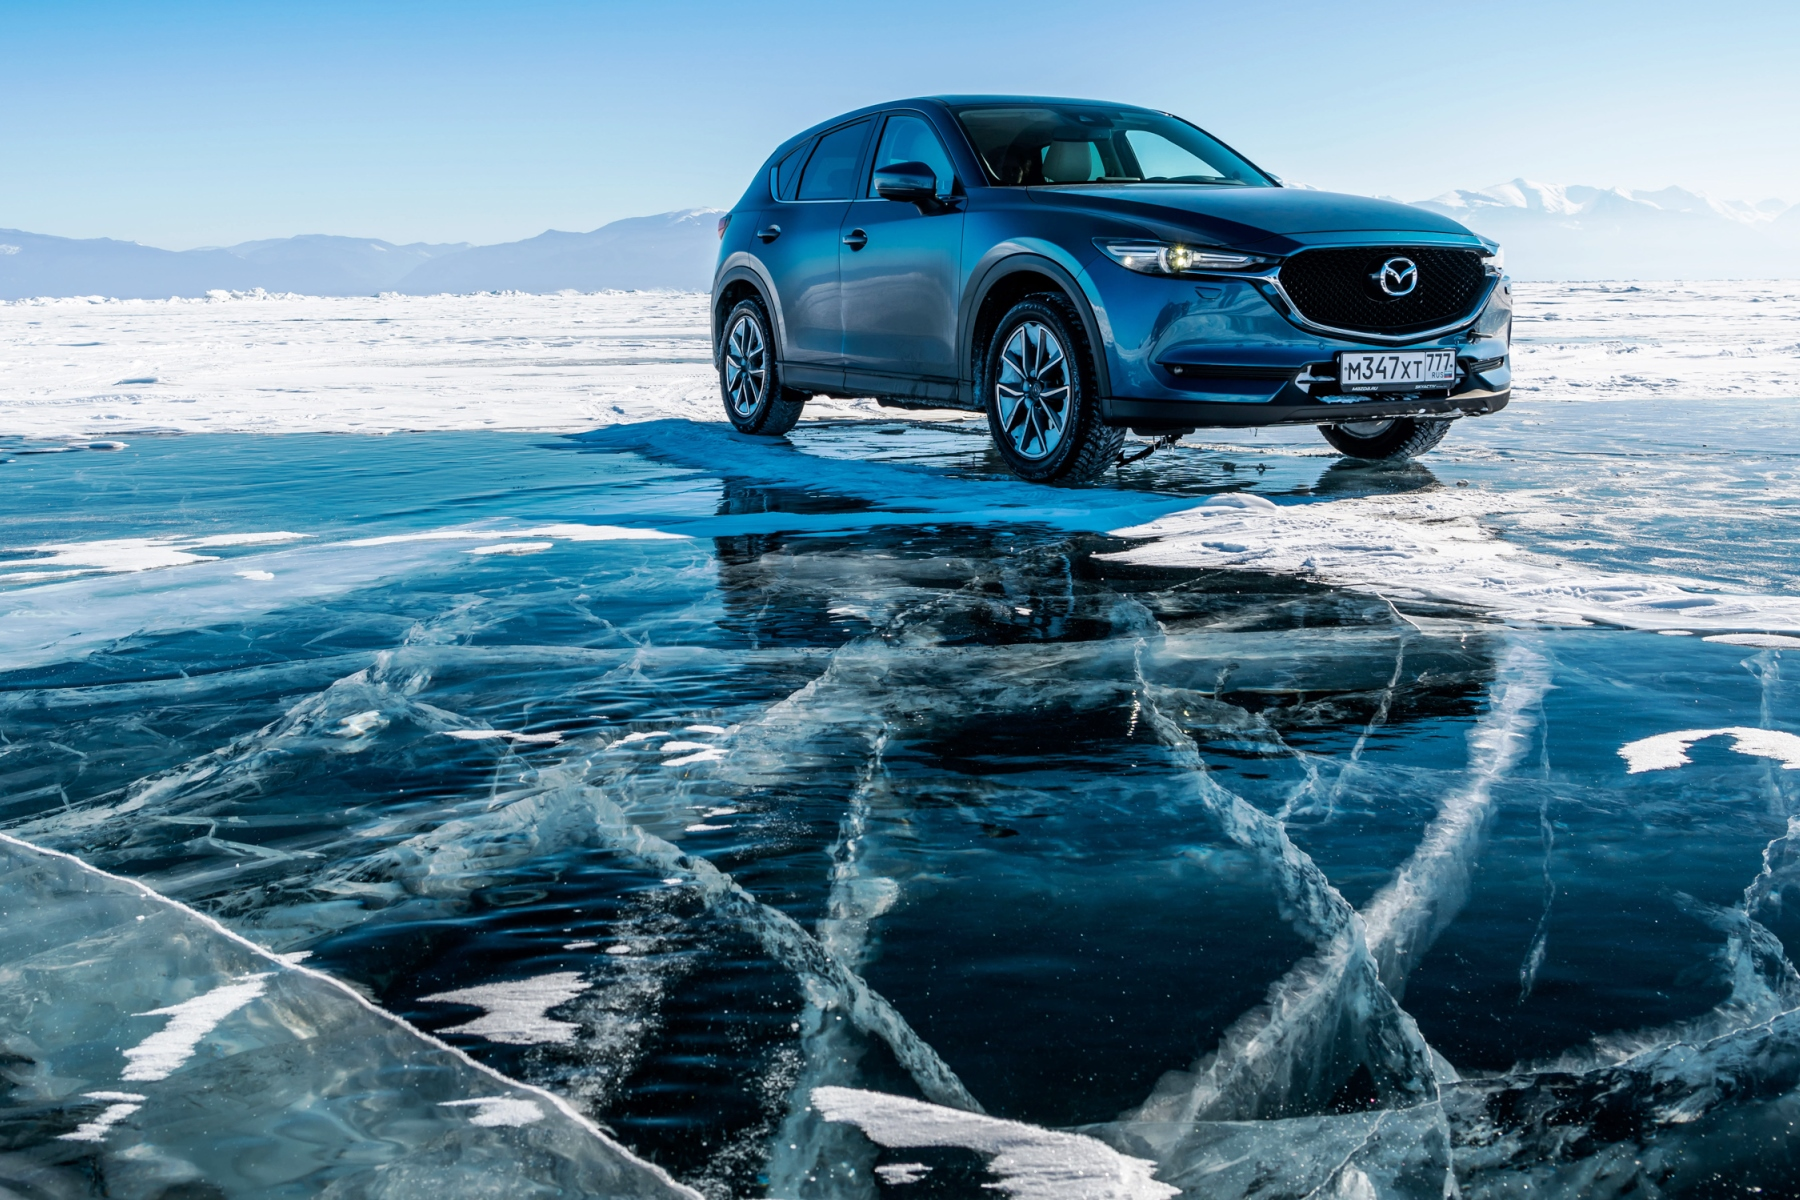 Mazda Conquering the World's Largest Lake - Freeze!